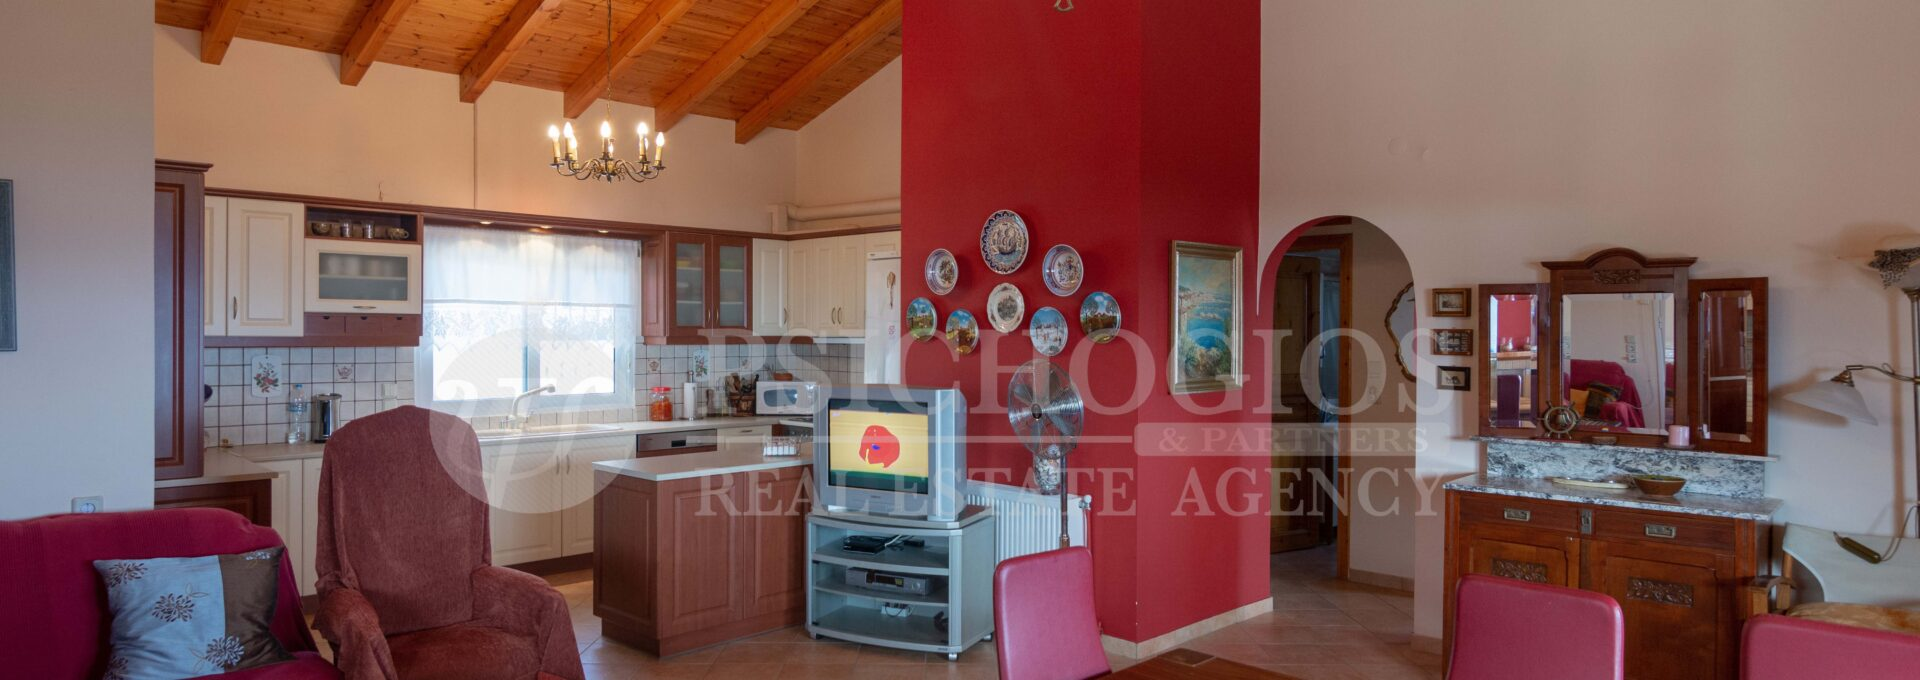 for_sale_house_107_square_meters_3_bedrooms_sea_view_ermioni_greece 1 1 (23)